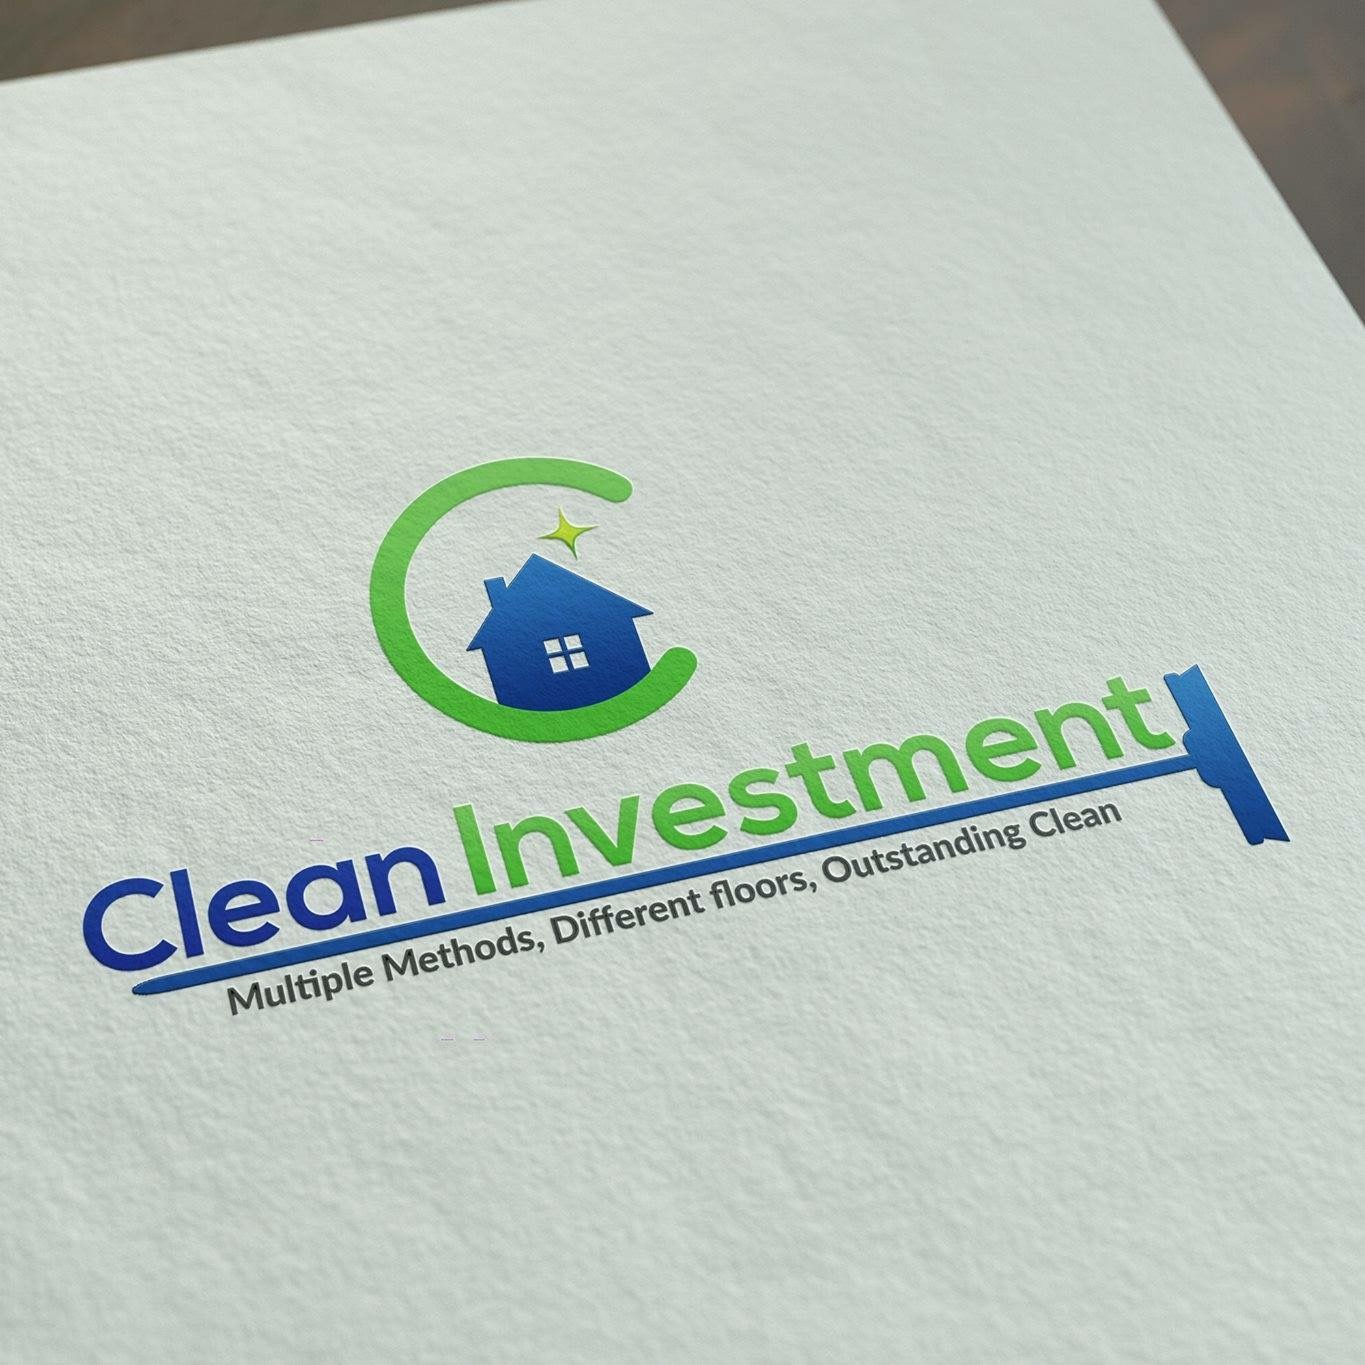 Clean Investment logo